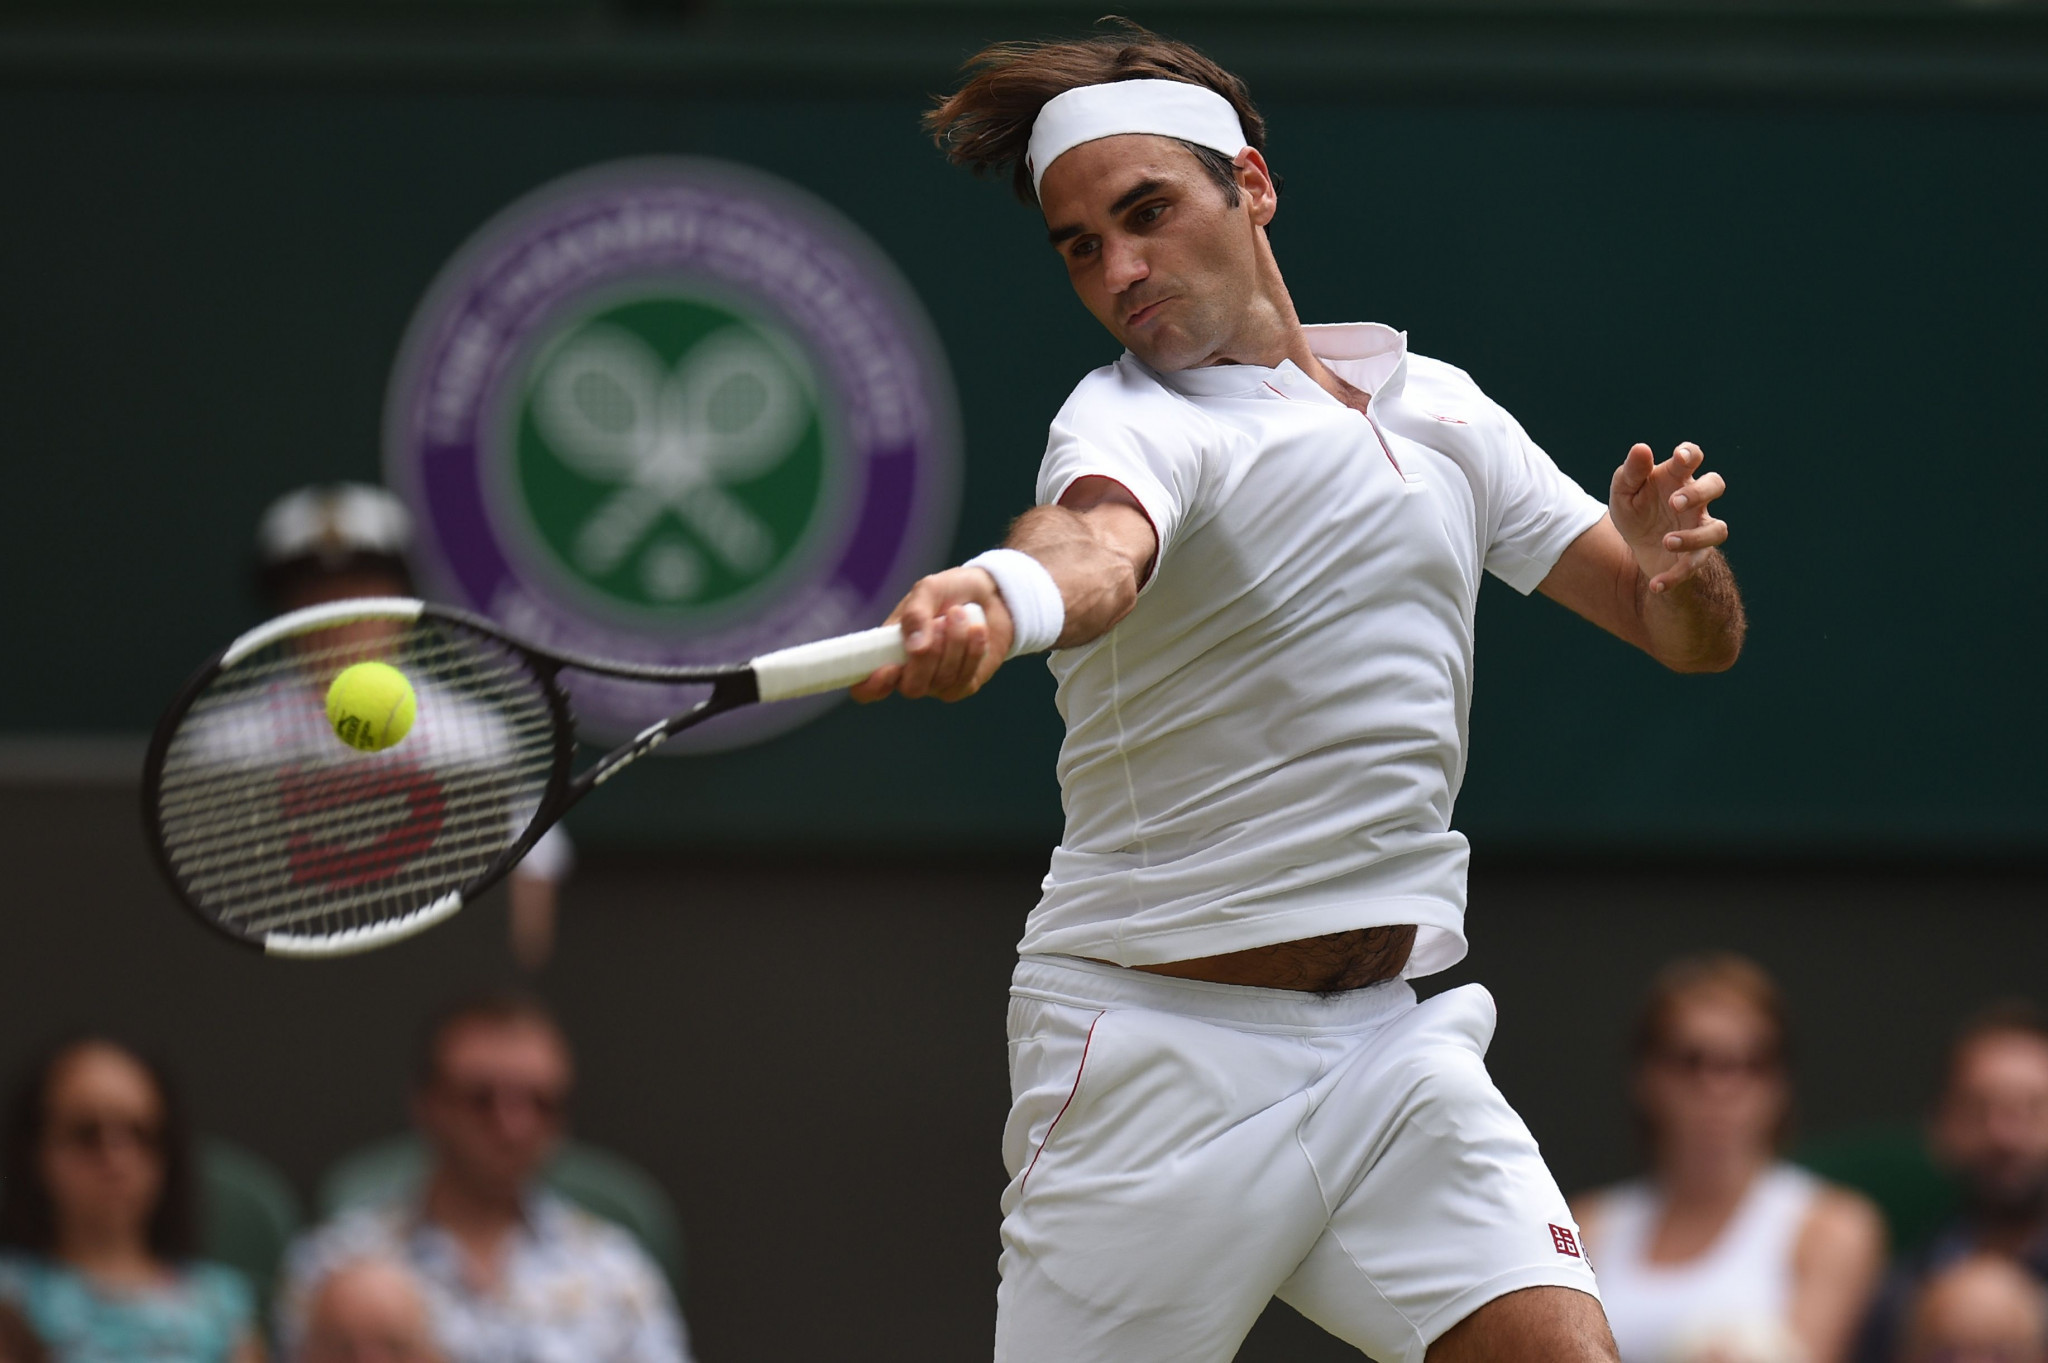 Federer breezes through on manic day at Wimbledon